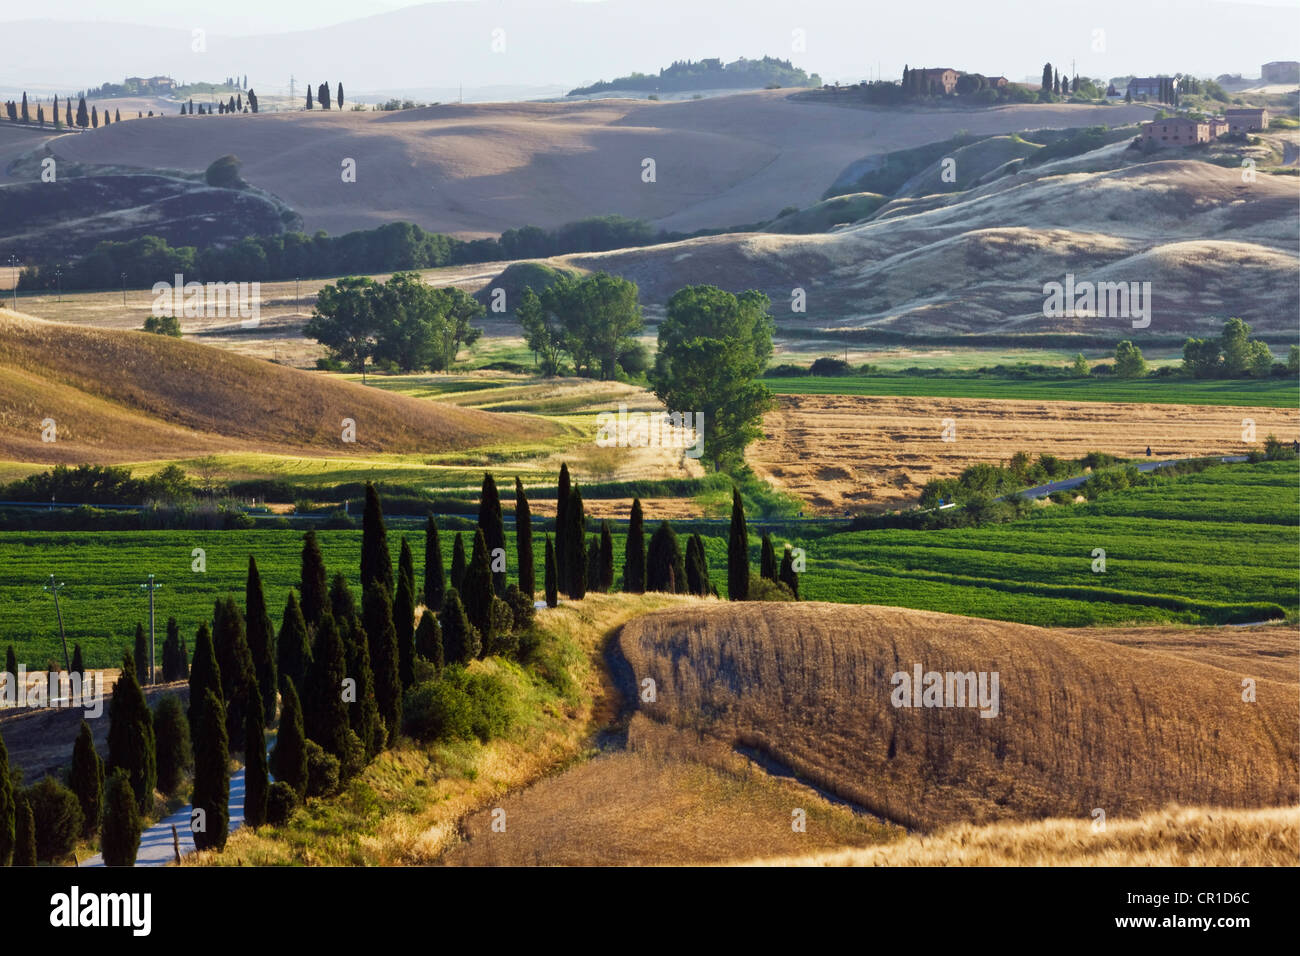 Typical Tuscan landscape near Taverne d'Arbia, Tuscany, Italy, Europe Stock Photo